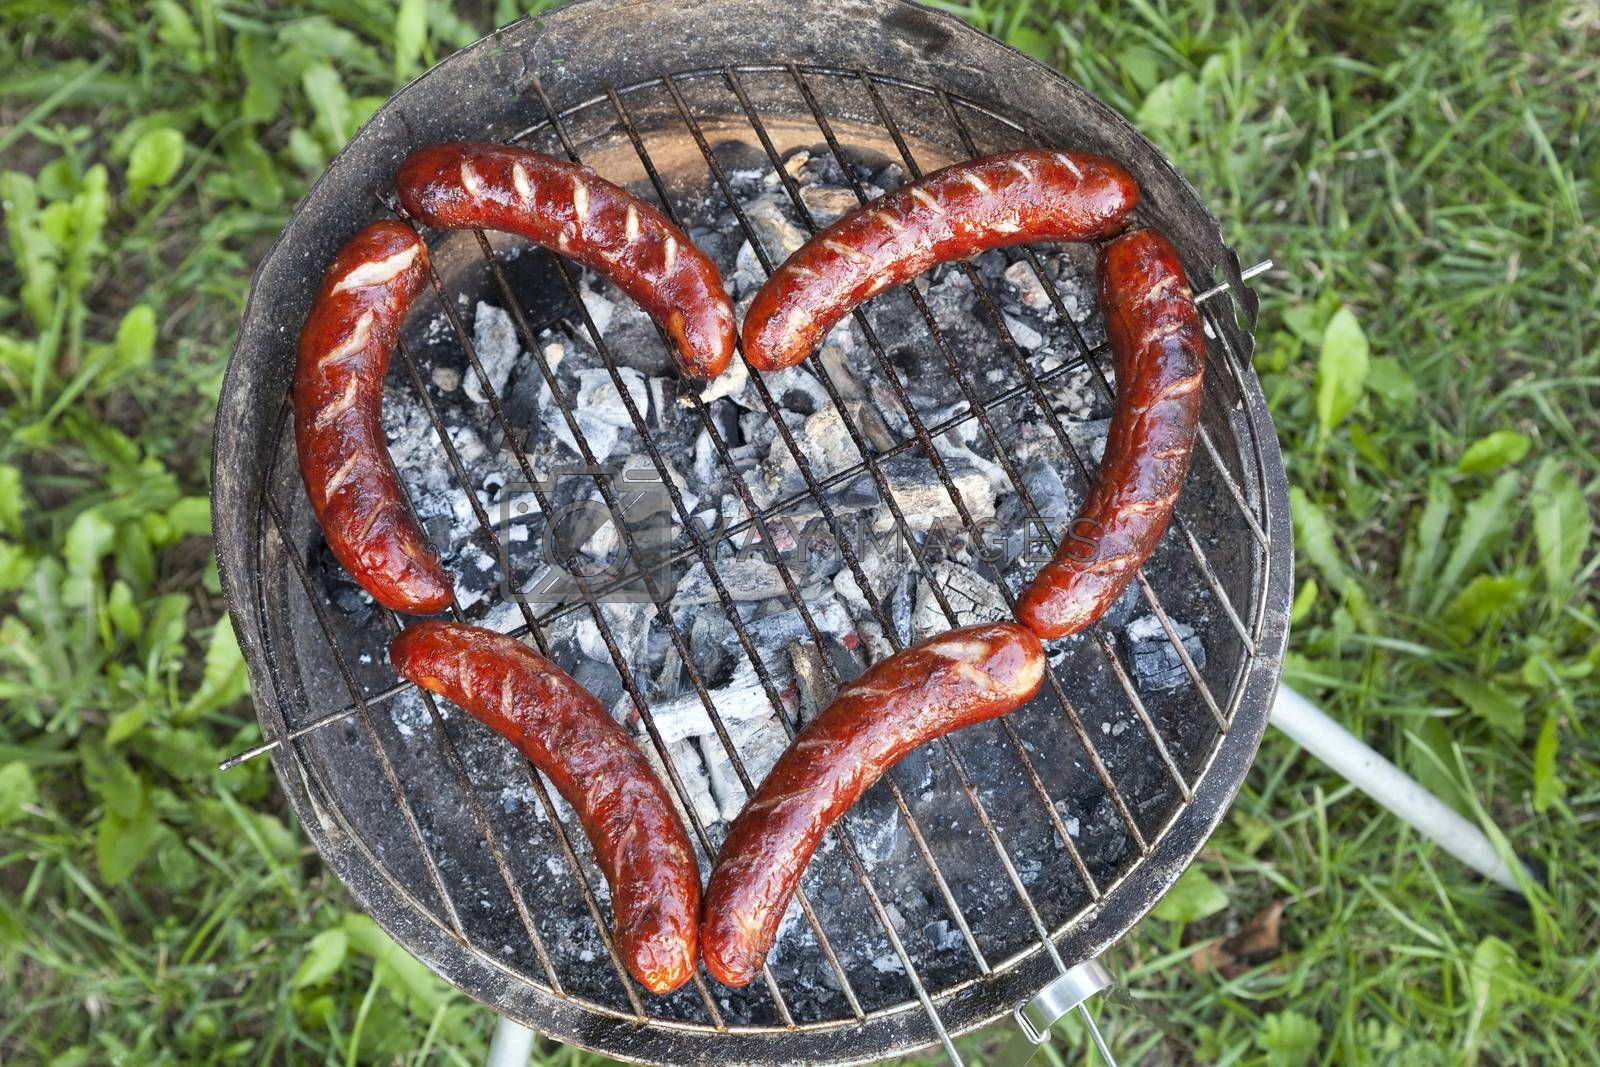 sausage on grill arranged in shape of heart